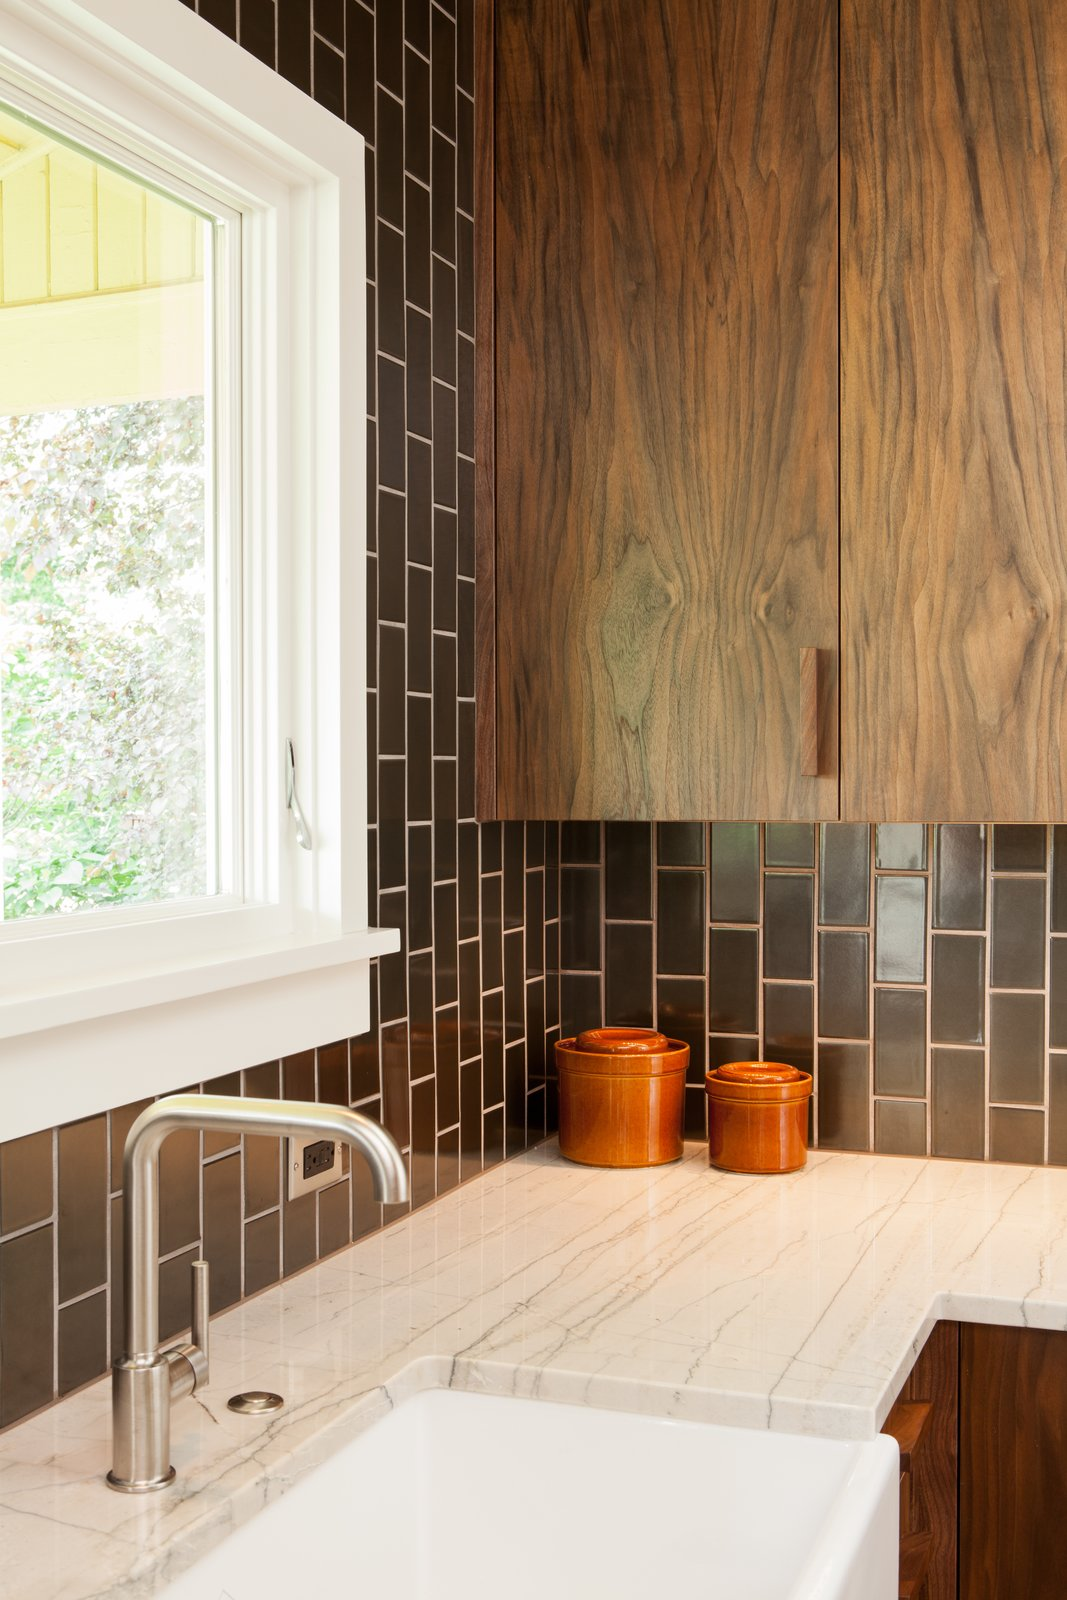 Walnut + gunmetal: Our goal was to be bold but not cold. Handmade tile adds a humane touch. Richly textured walnut cabinetry and pulls add warmth. Tagged: Kitchen, Granite Counter, Ceramic Tile Backsplashe, and Wood Cabinet.  Holly + Magda by Howells Architecture + Design